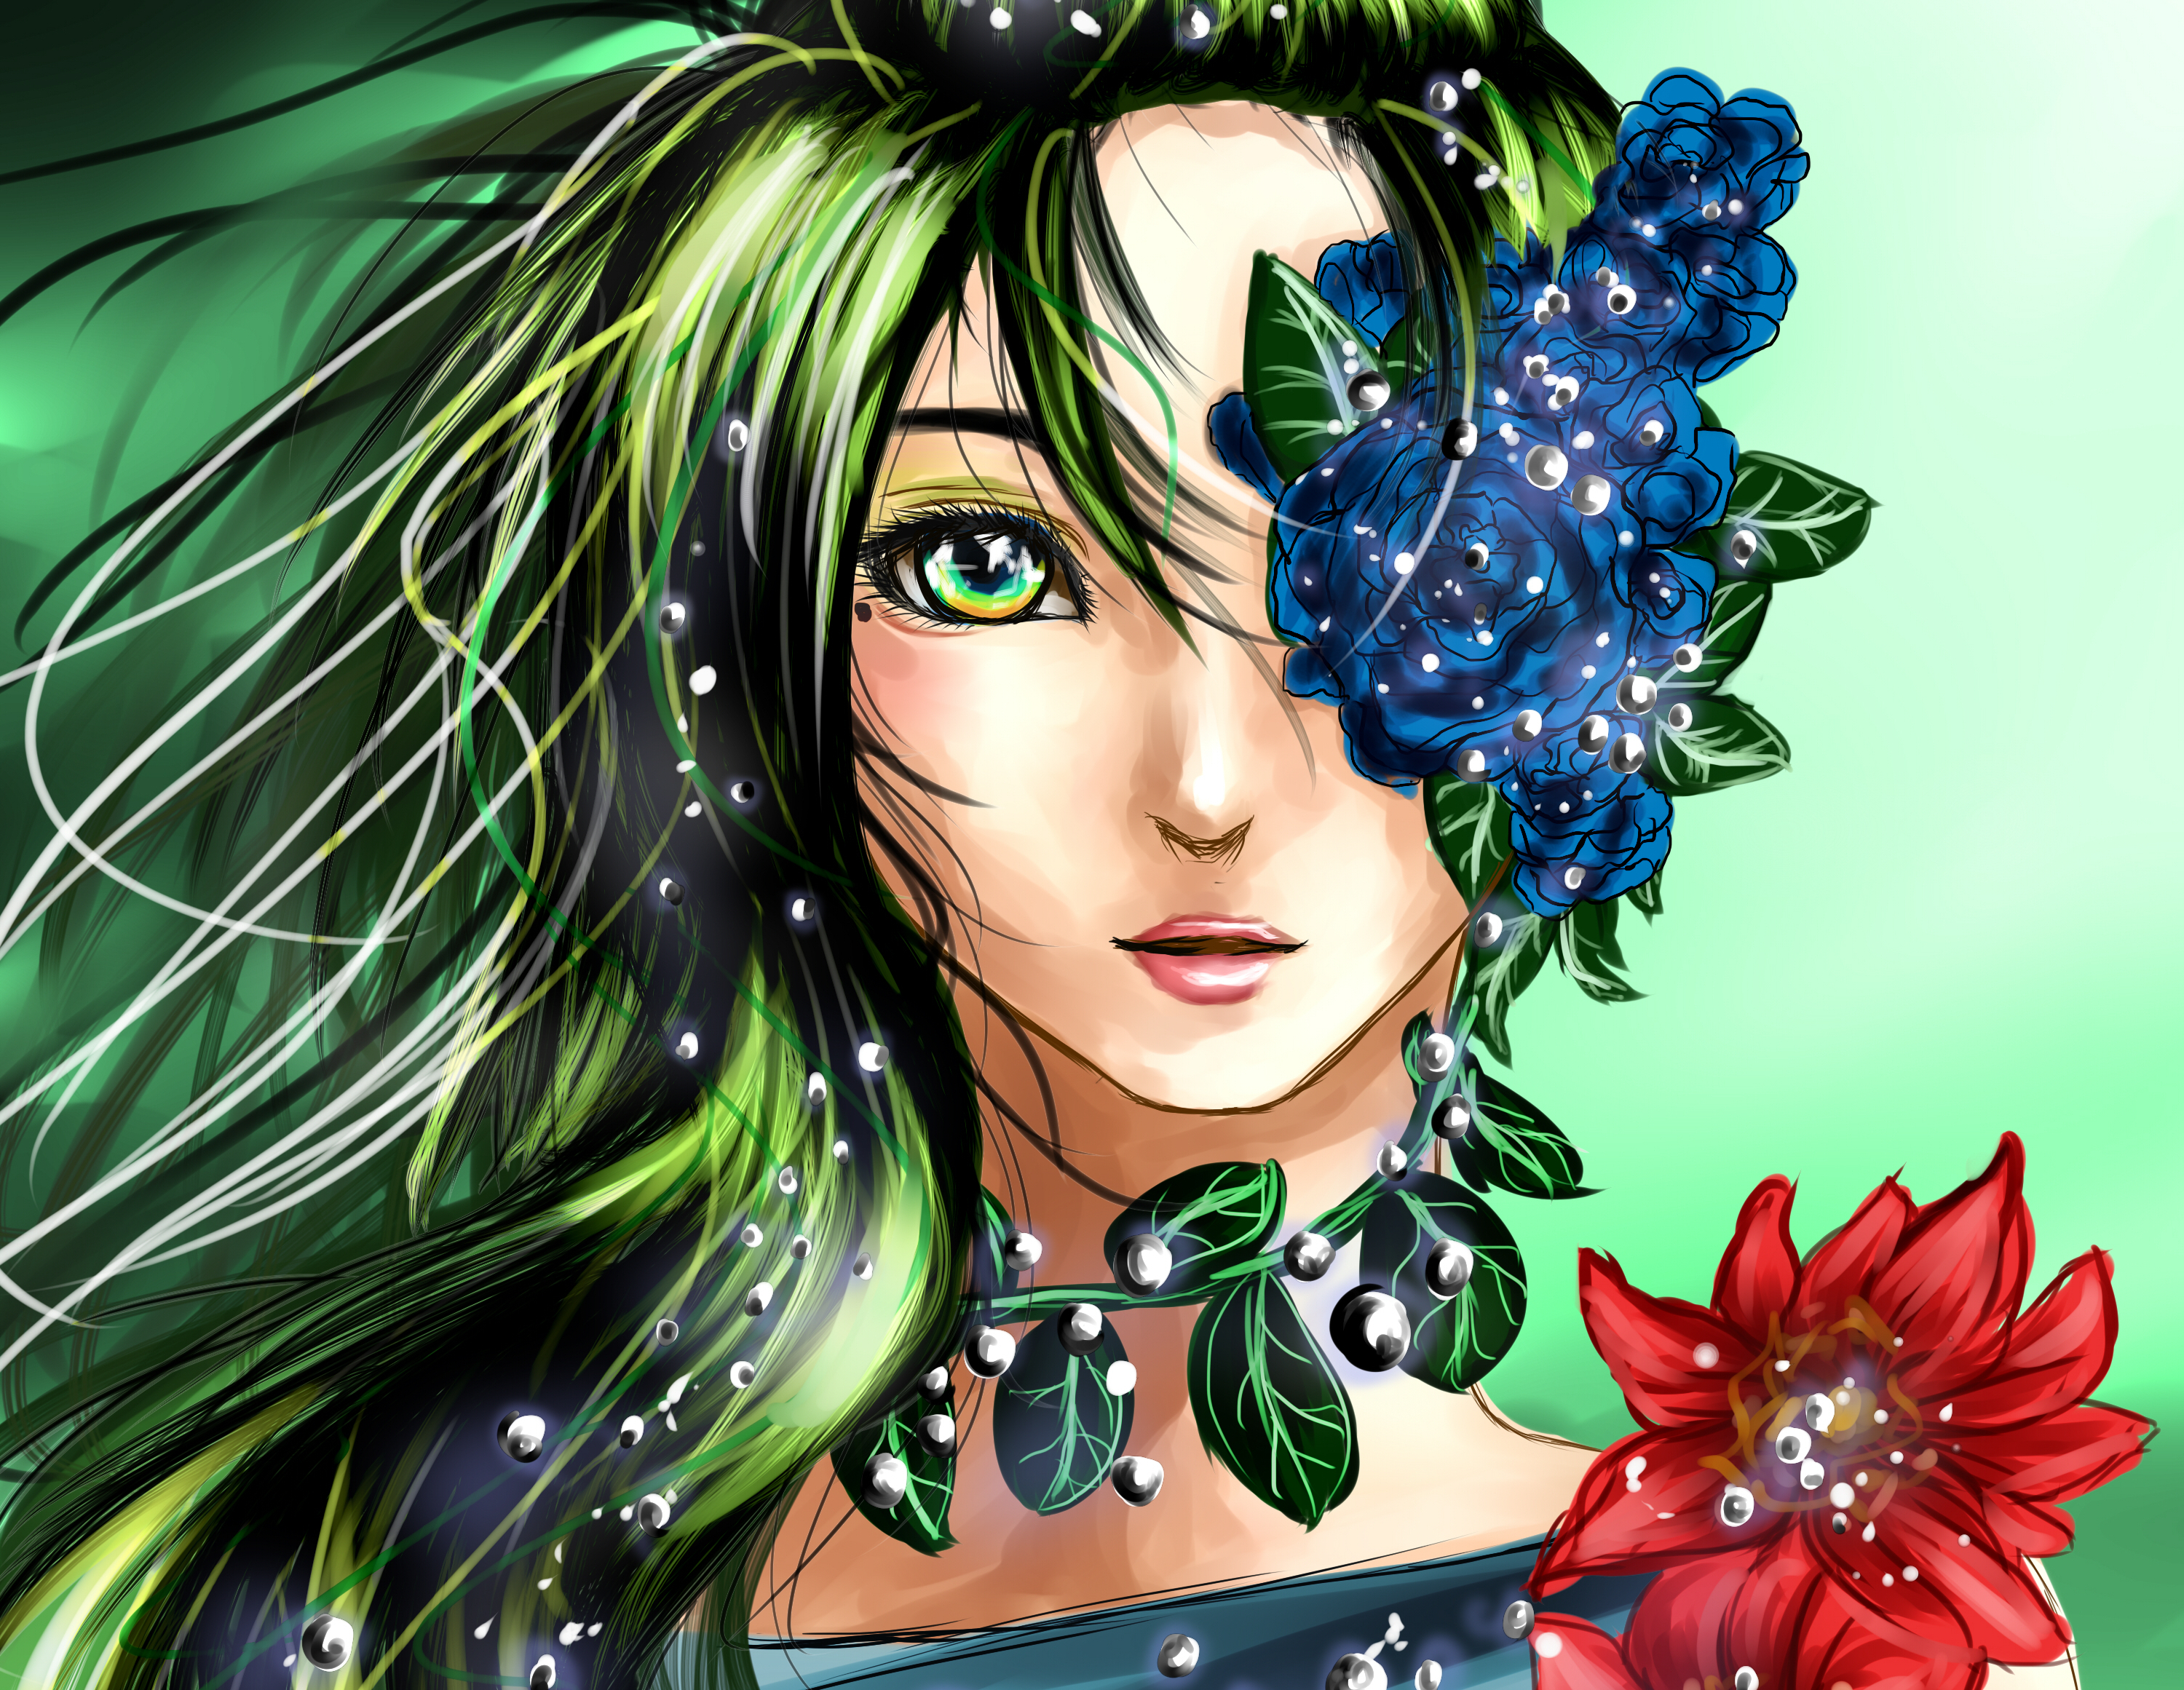 Fantasy - Fairy  Green Hair Green Eyes Fantasy Girl Woman Flower Leaf Sparkles Wallpaper